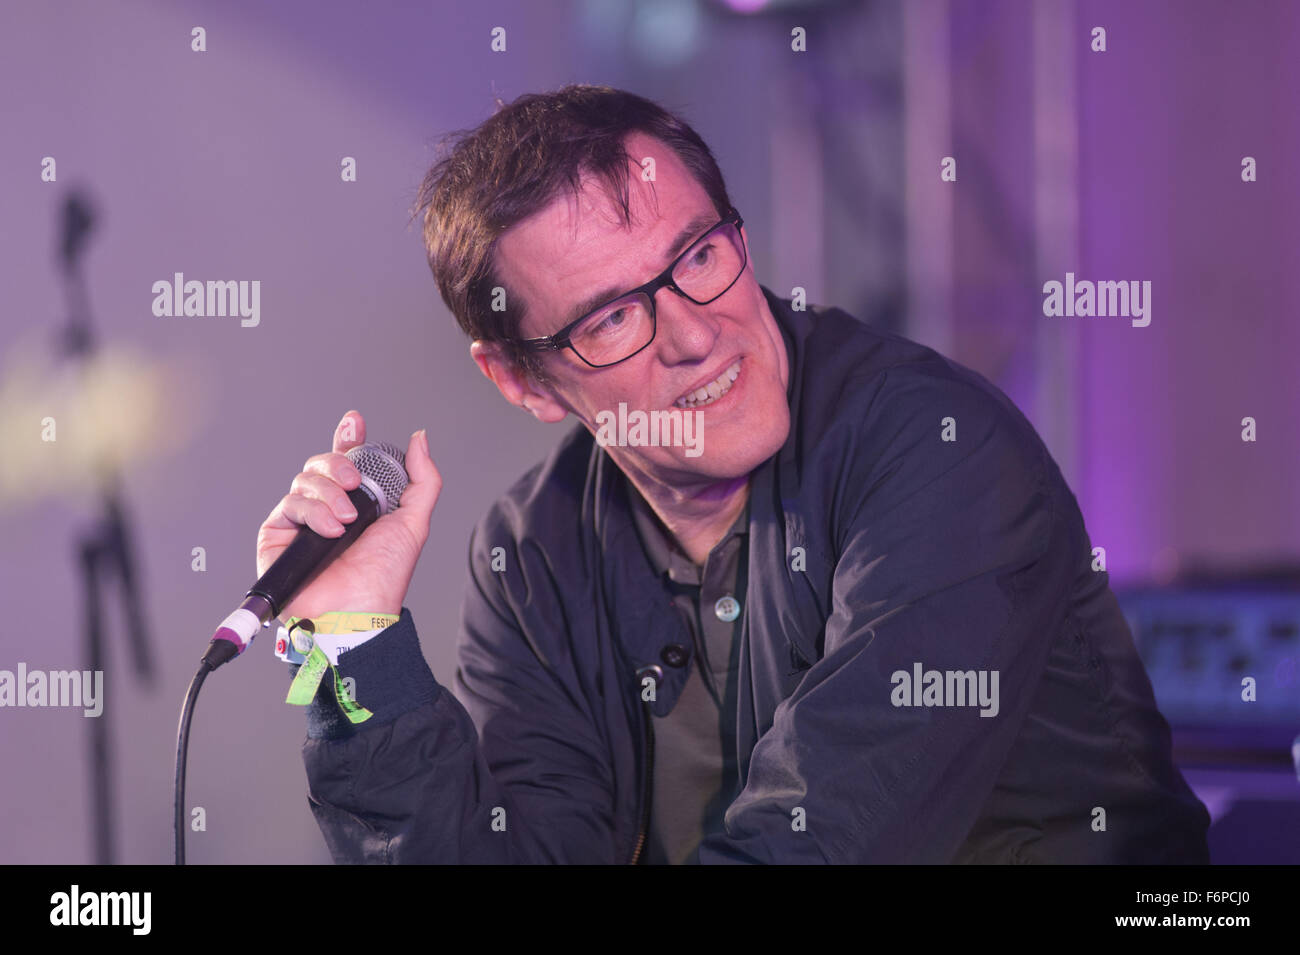 Stephen Morris in conversation at Festival No.6 3rd September 2015 Stock Photo